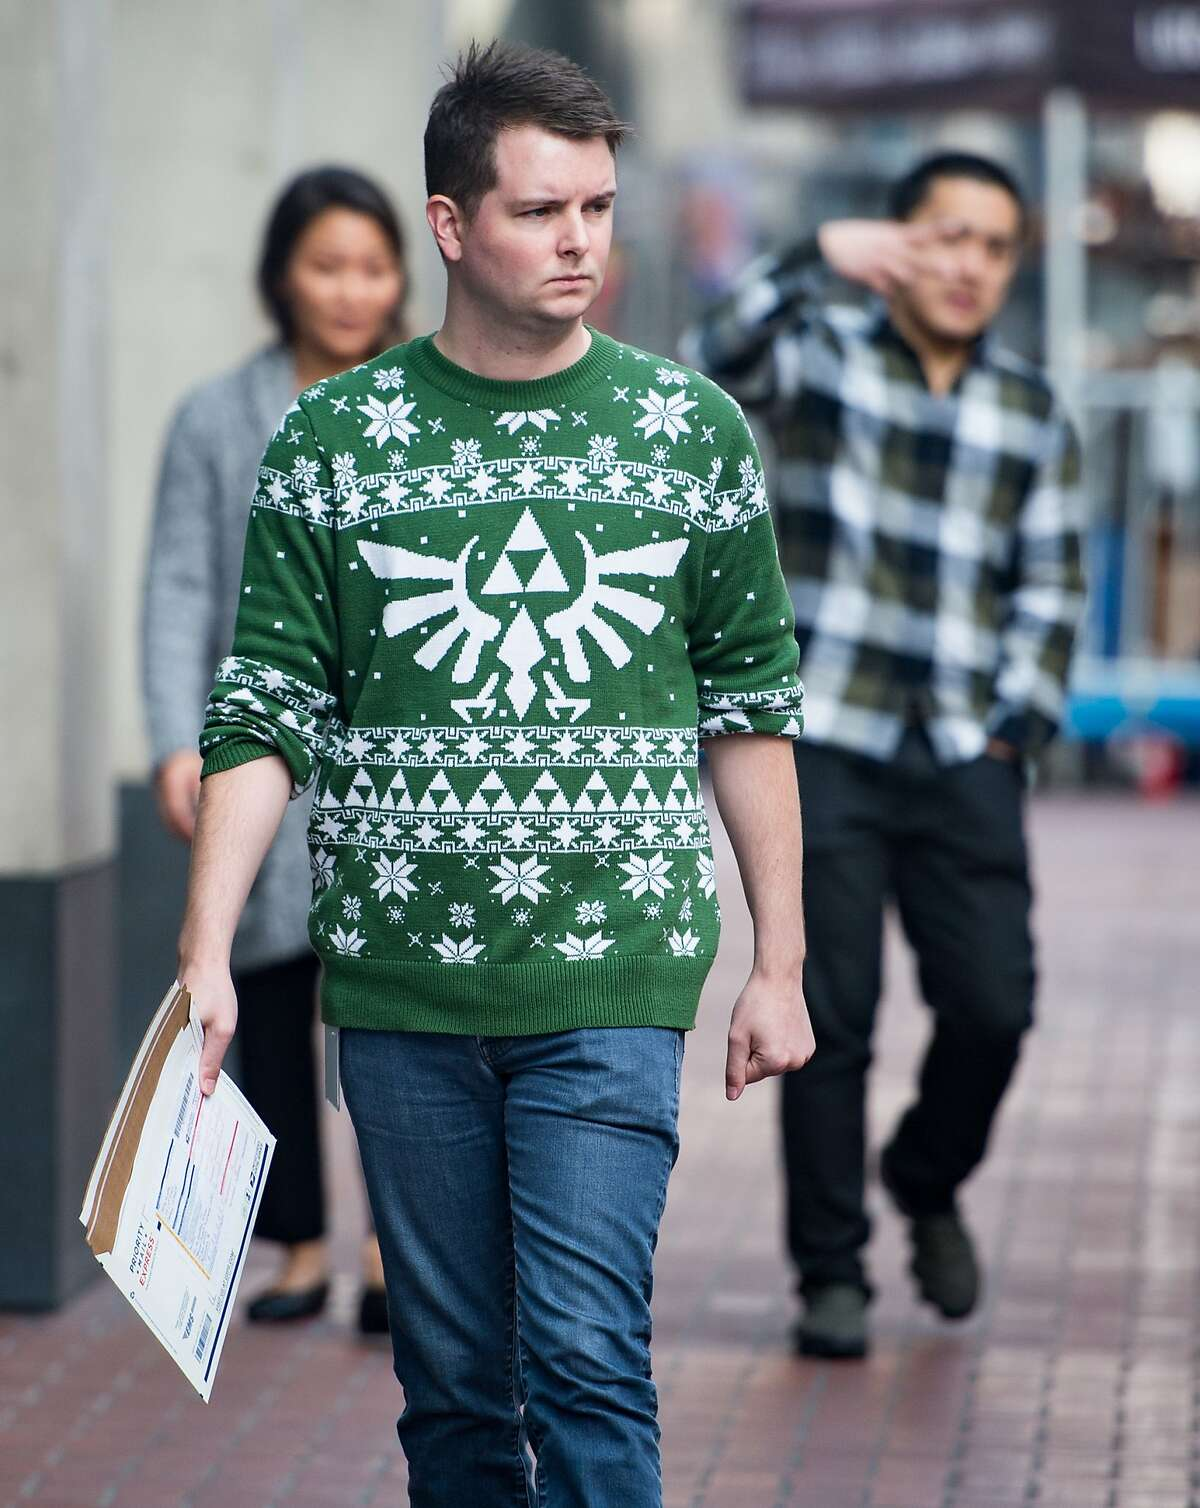 Taylor Huckaby wears a video game-themed Christmas sweater during National Ugly Christmas Sweater Day in San Francisco on December 15, 2017.